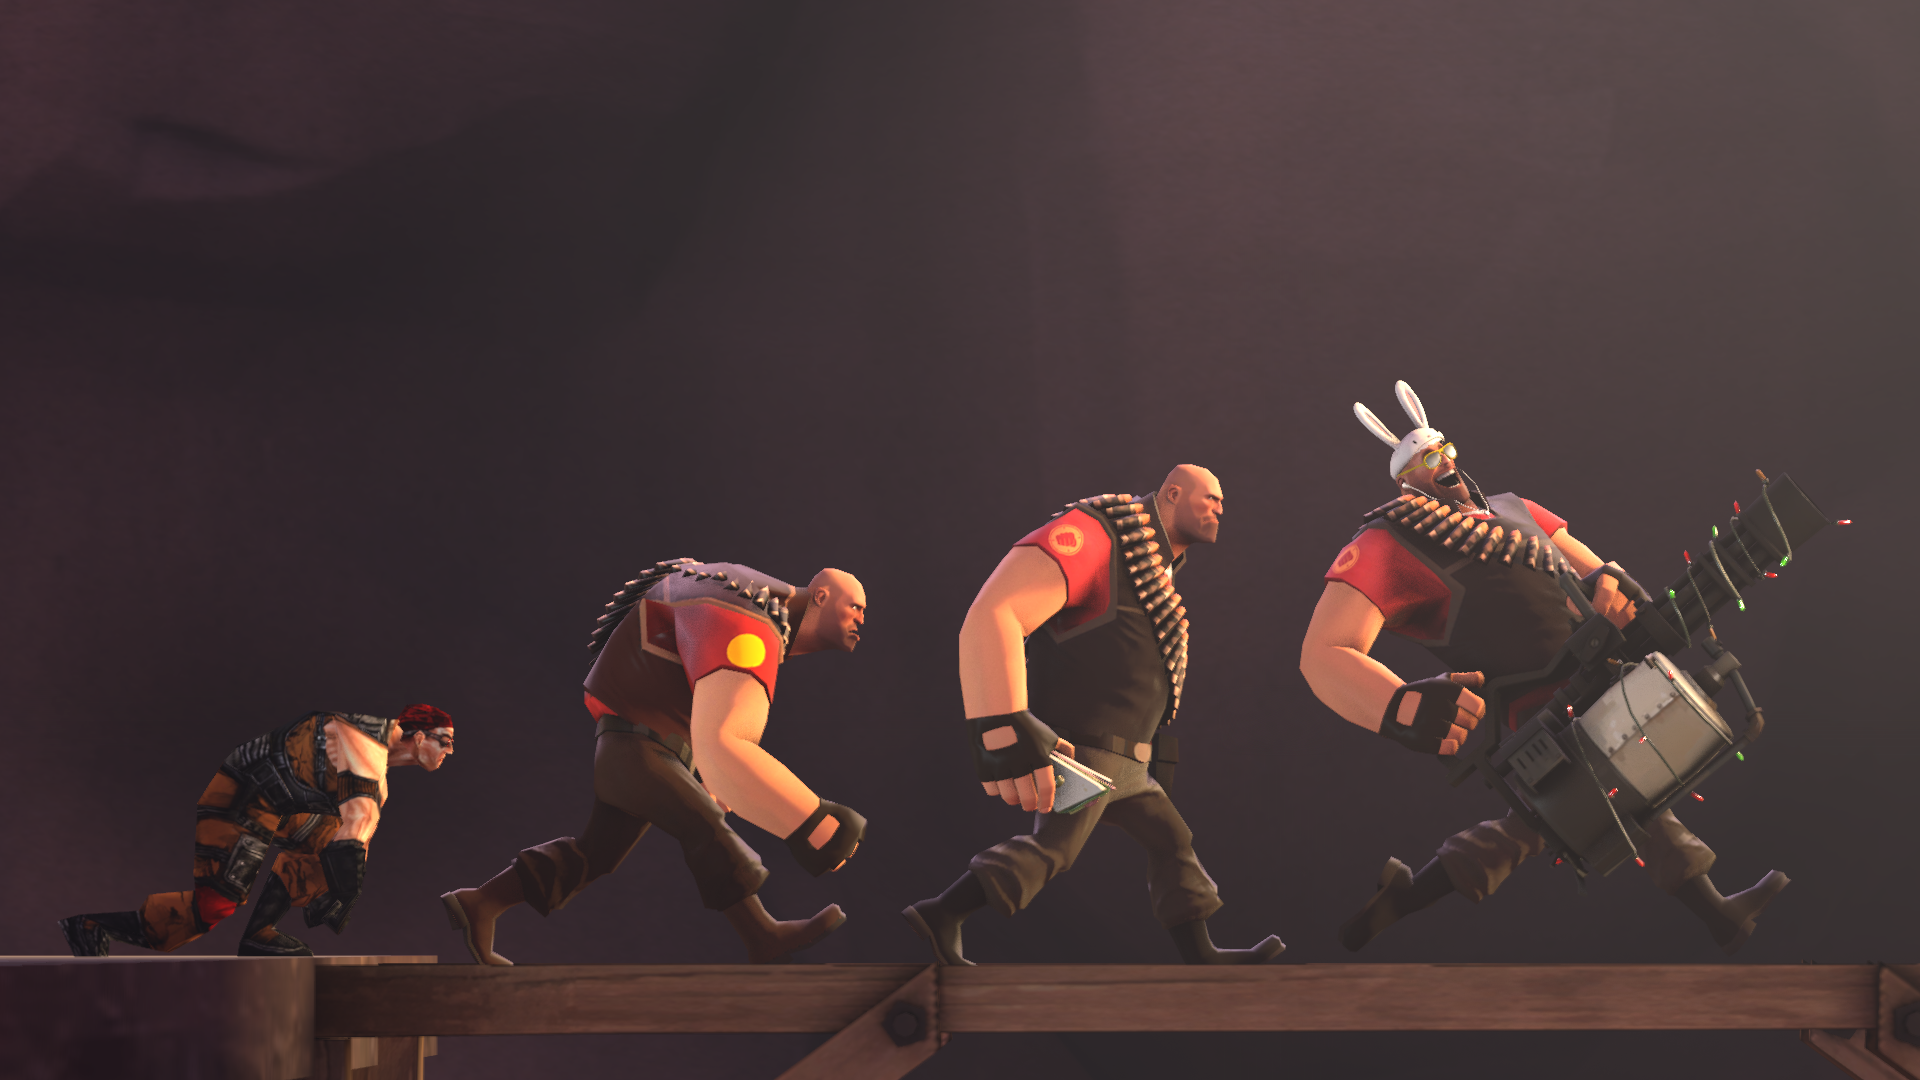 Pin On Team Fortress 2